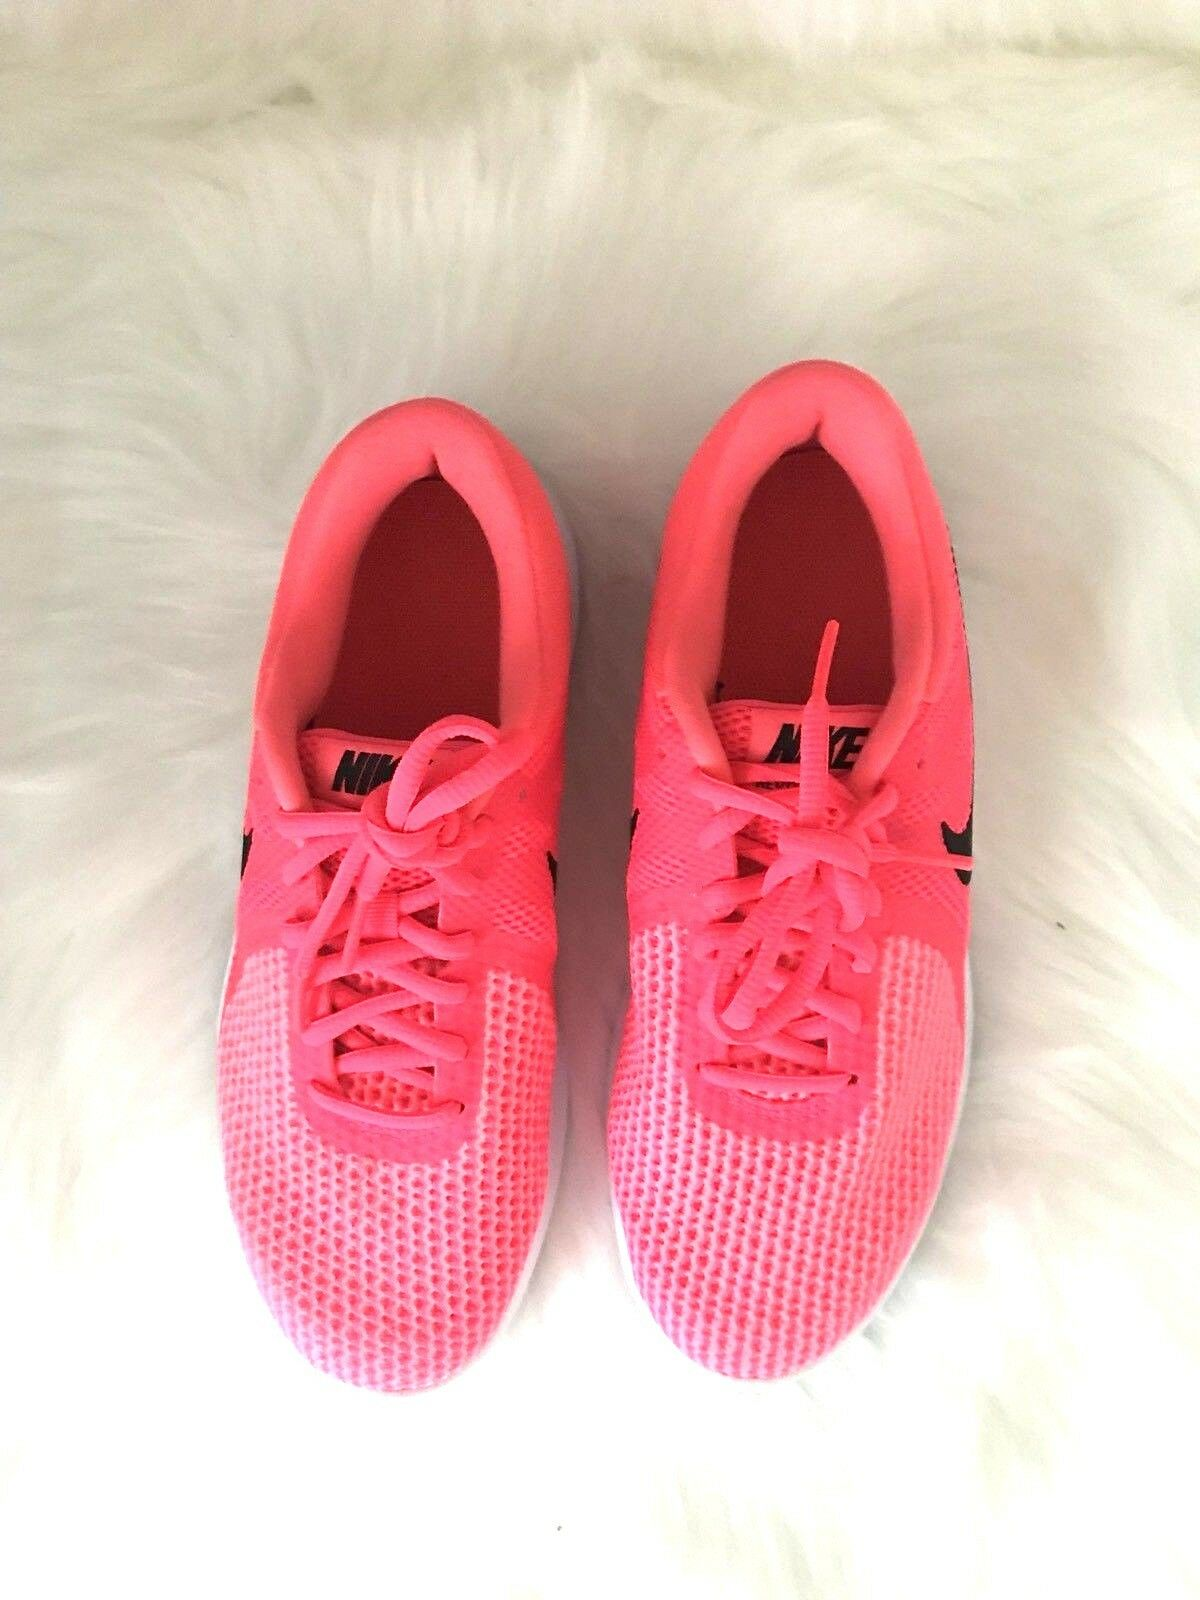 Women's NIKE REVOLUTION 4 shoes, sneakers New RN 9089999 Size 7